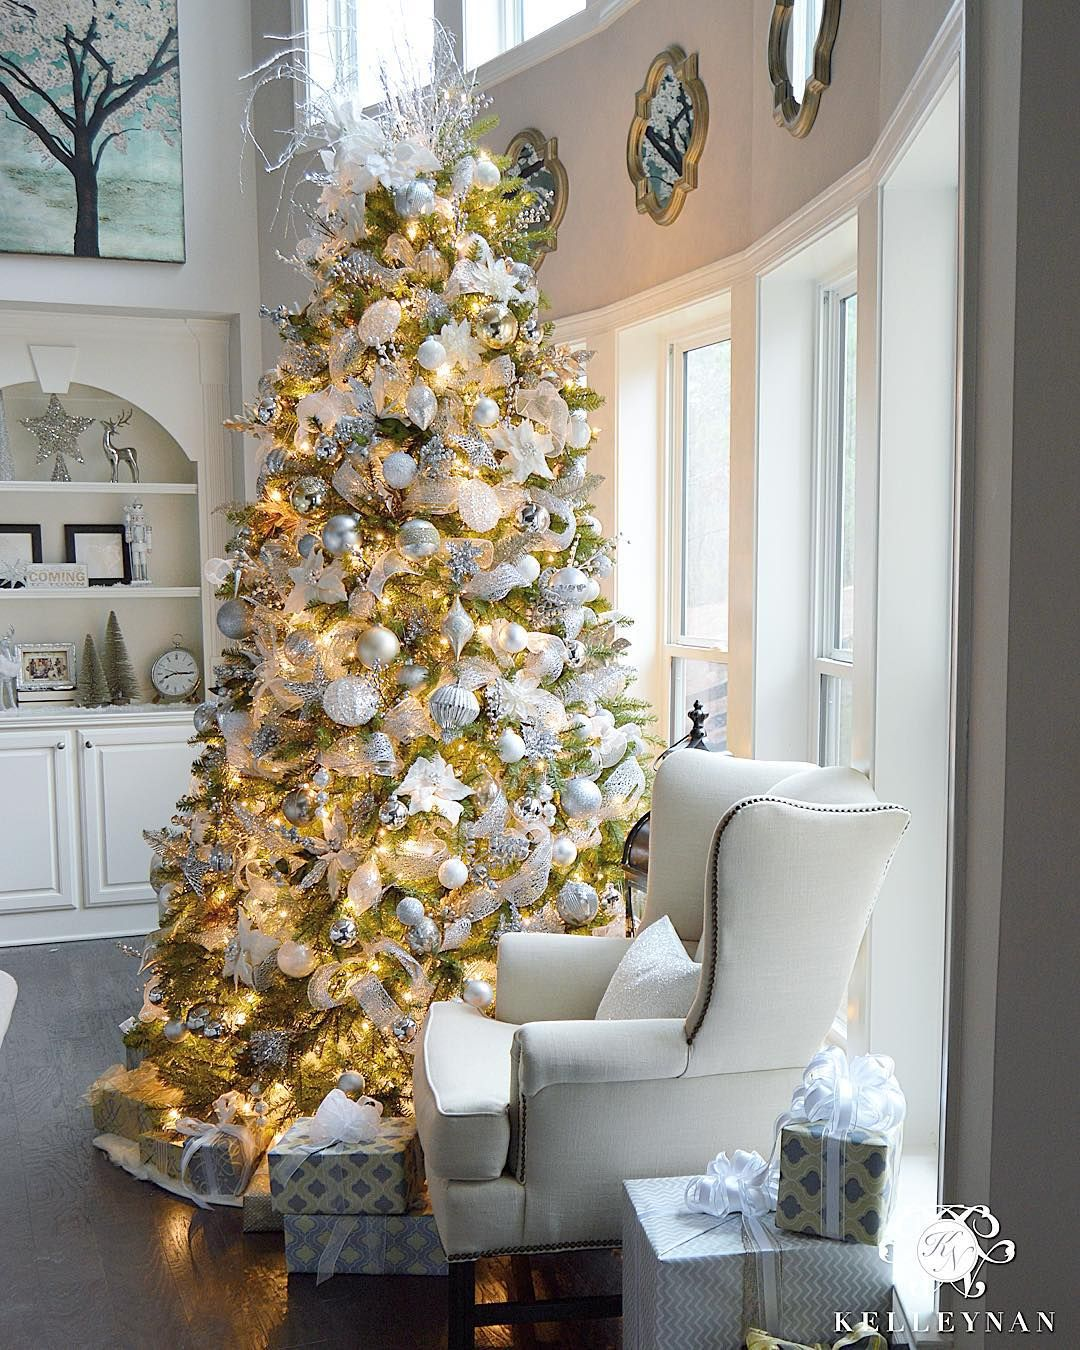 9 foot white gold and silver christmas tree filled with ornaments in two story great room in front of bow of windows check out all the silver and gold